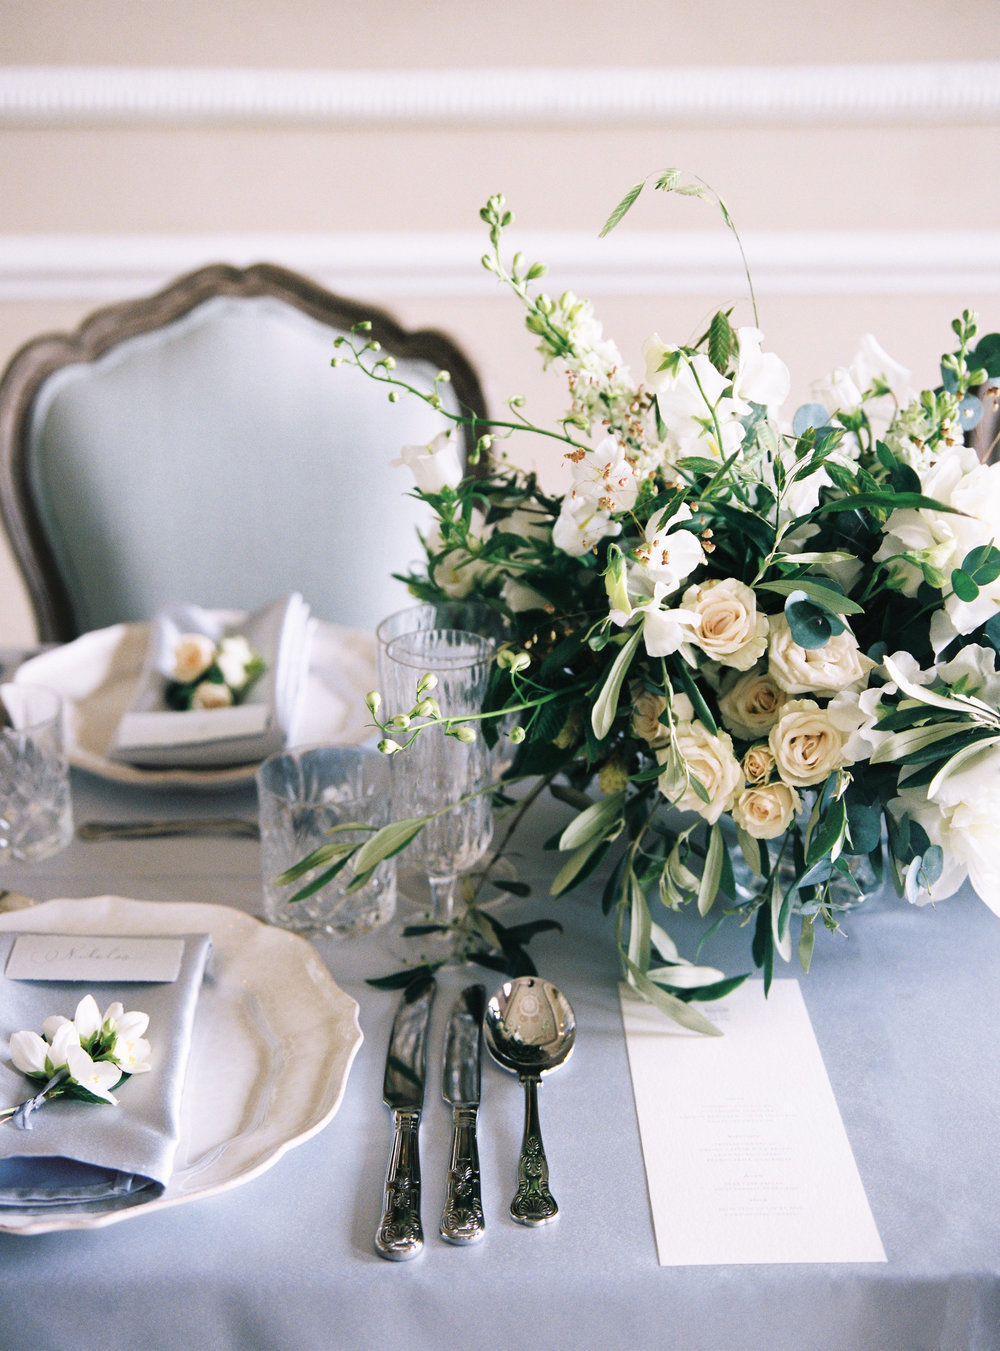 Luxury Wedding Planner UK | A Timeless English Inspired Editorial with Georgian Blue | Cotswolds Wedding White and Silver Toned Green Neutral Tones | The Royal Crescent Hotel Bath | Alexander J Collins Photography 4 .jpg